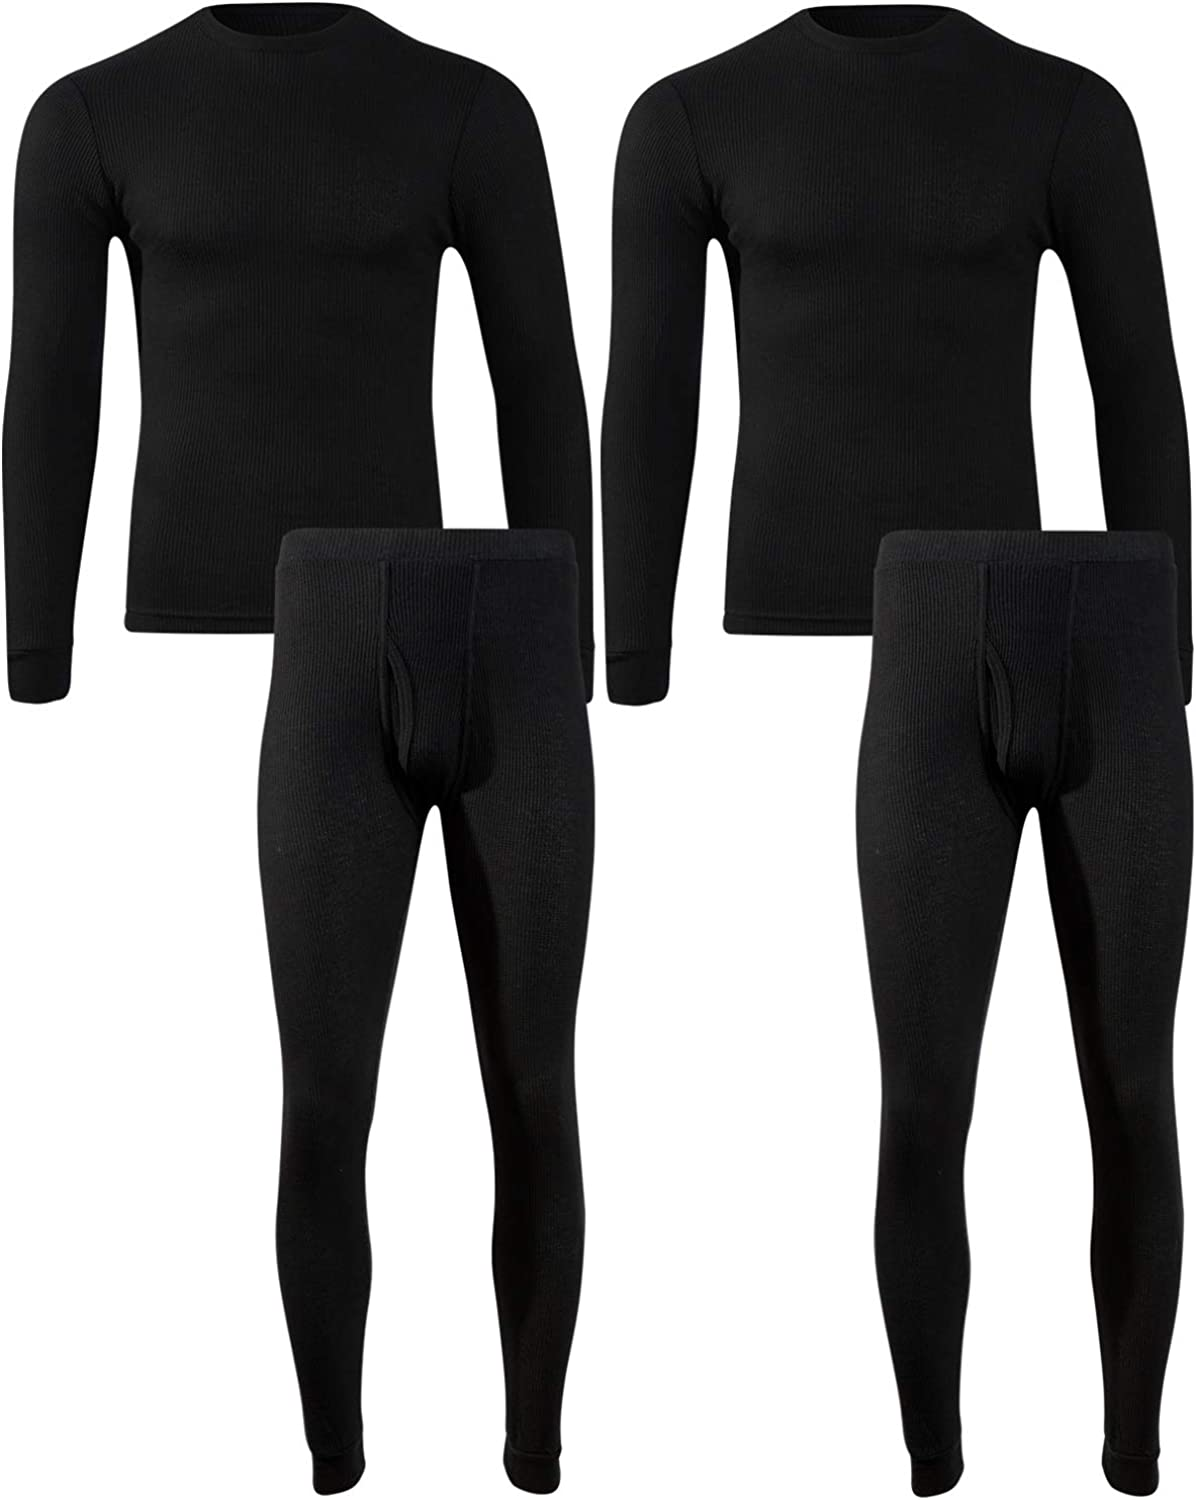 Beverly Hils Polo Club Men's Long Johns Waffle Thermal Underwear Base Layer Set (2 Full Sets)